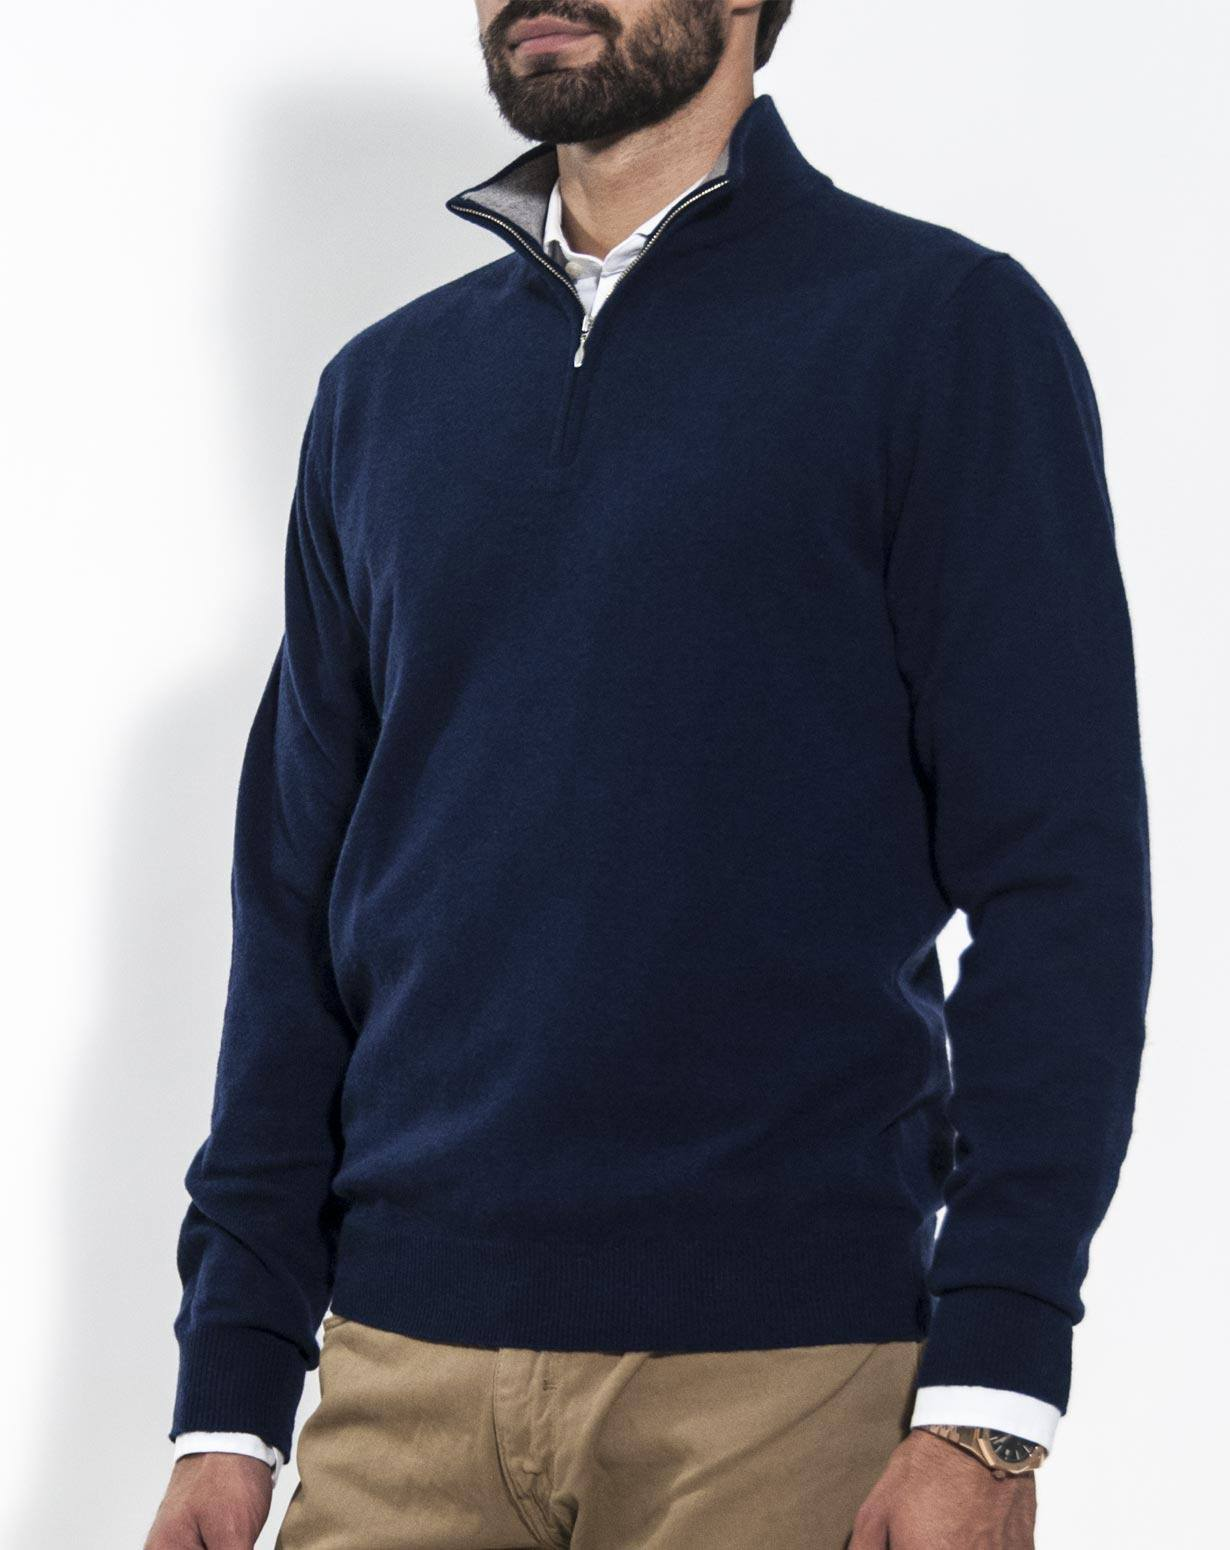 The Men's Contrast Piping Half-Zip Sweater is the warm, work-wear sweater that your staff will thank you for. It has just the right level of heat retention and softness that offers warmth without risking overheating and sweating.